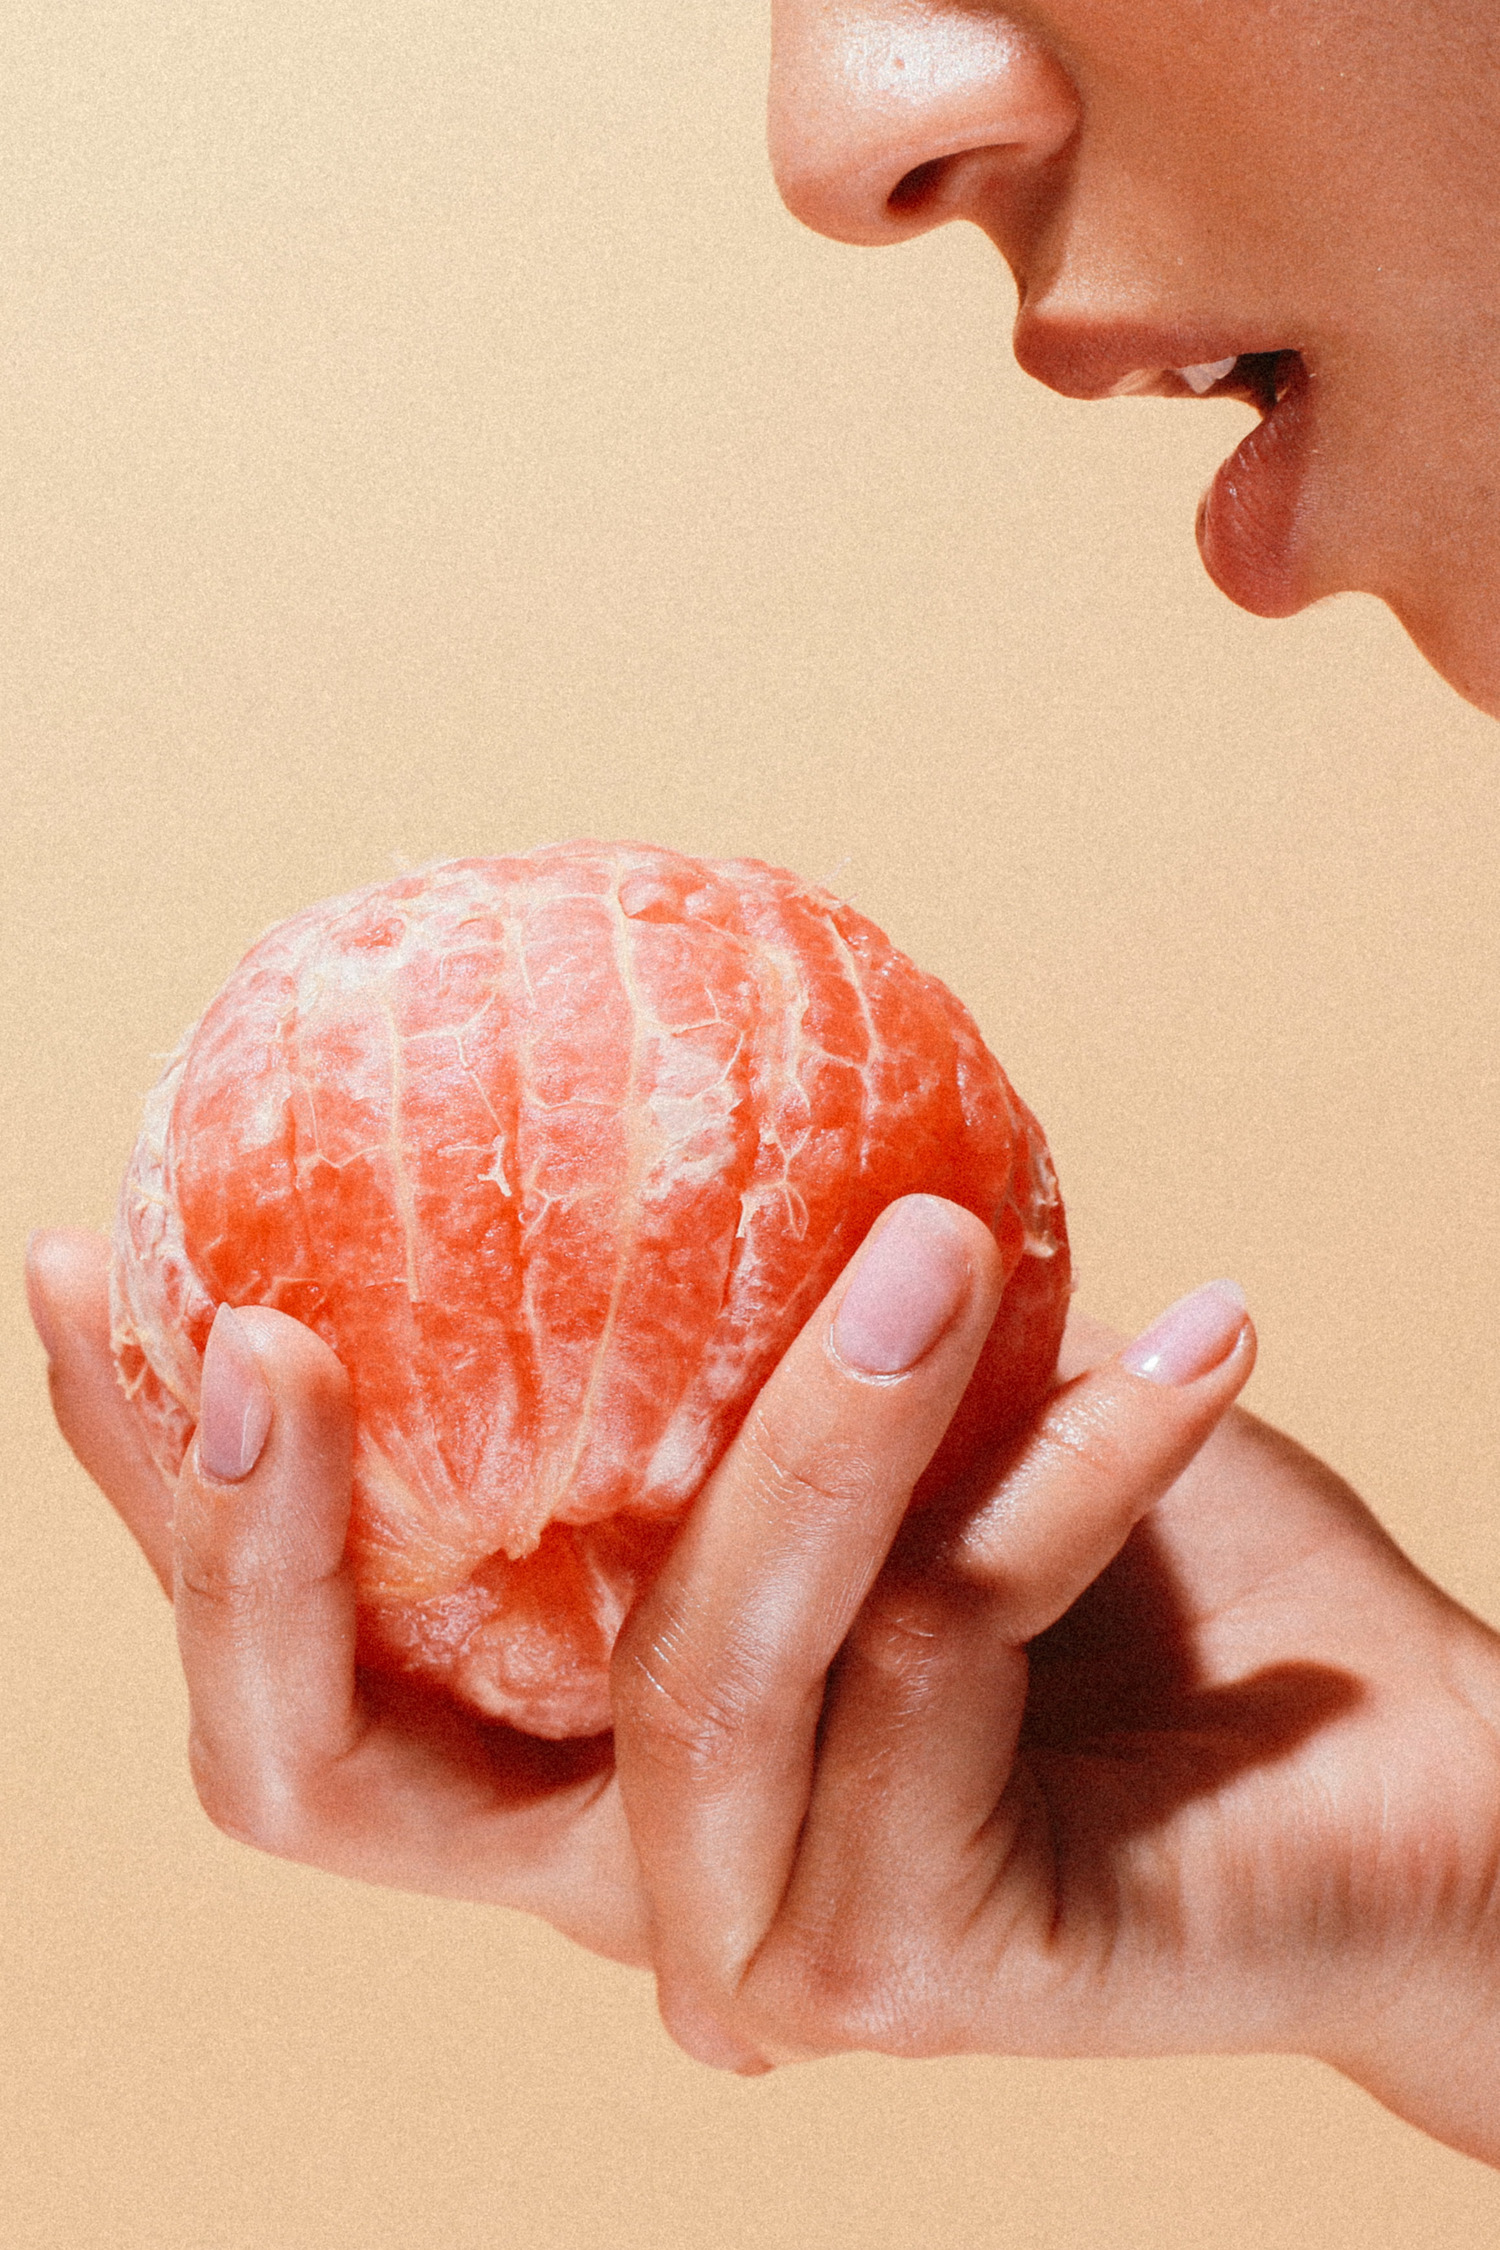 Grapefruit_BUDGETHUNGRY_FOOD_FRUIT_CHELSEAORTIZ_.jpg